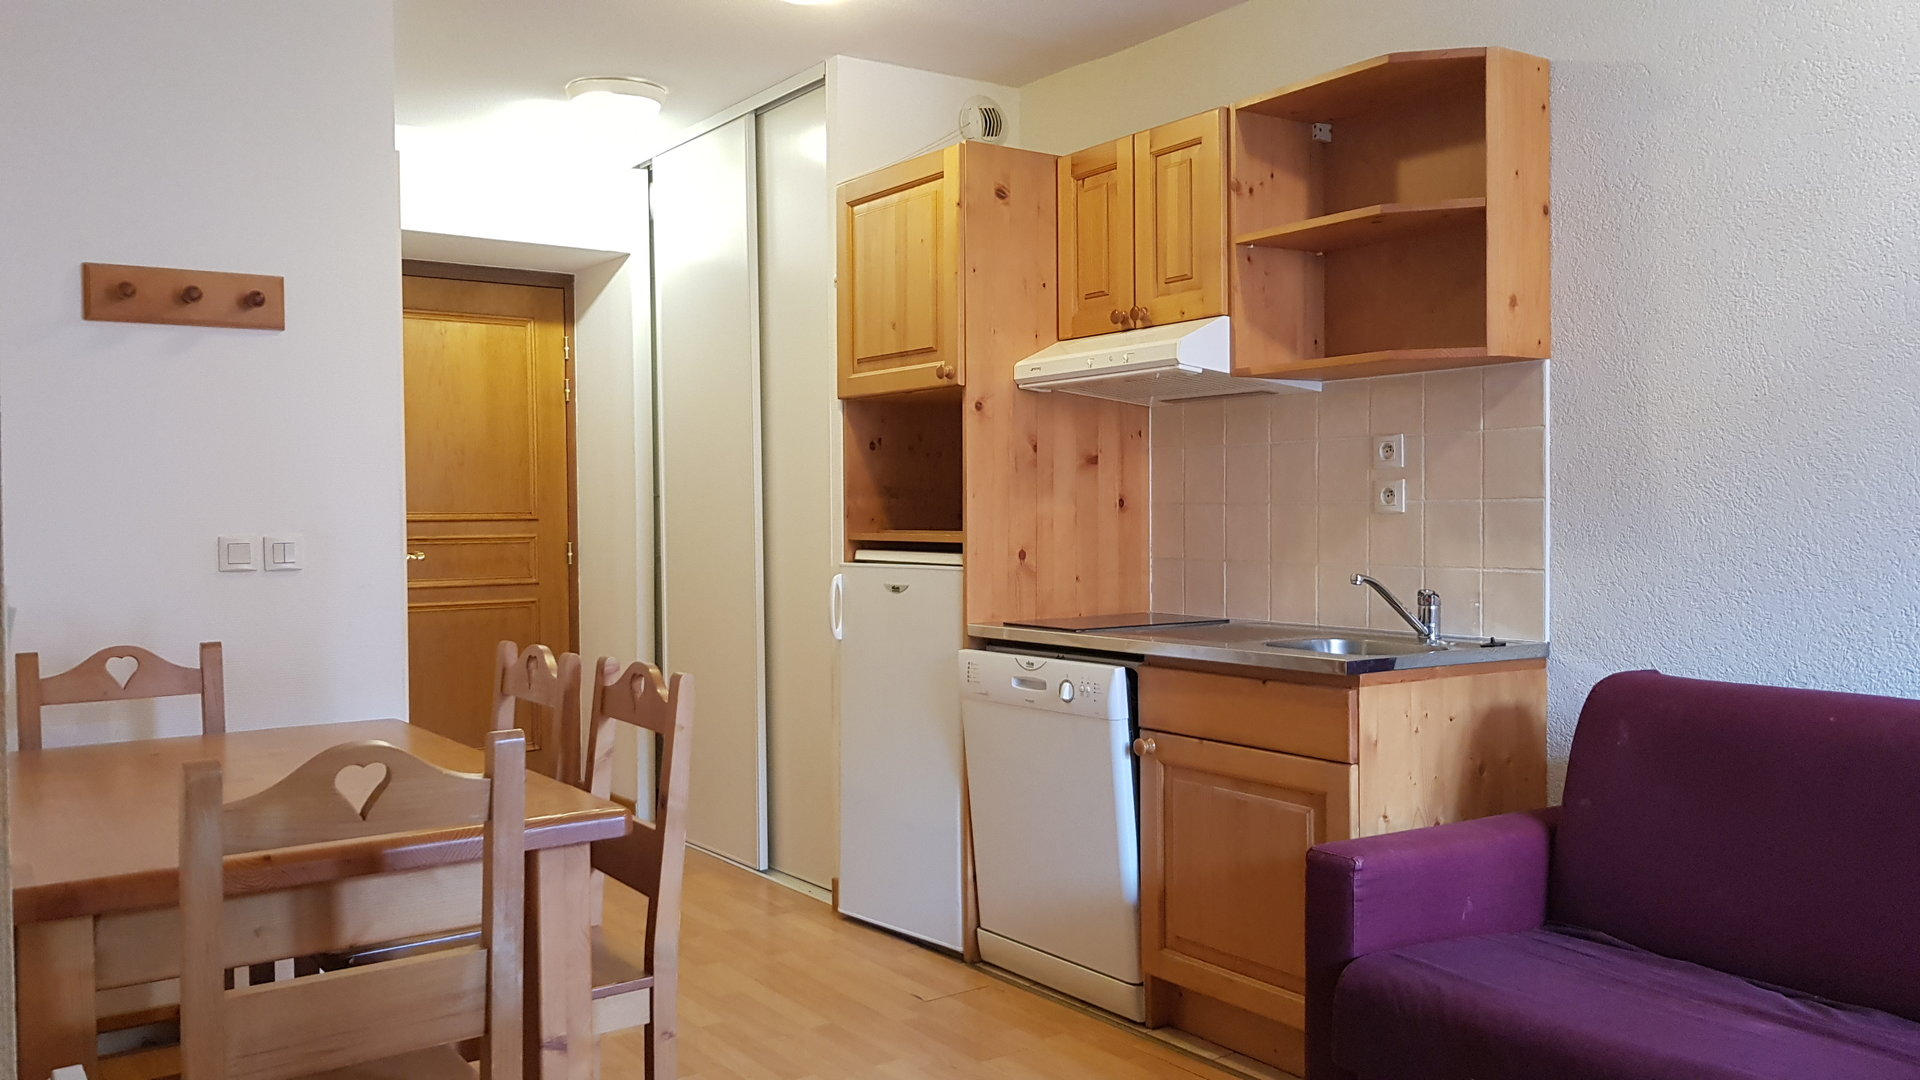 Appartement T2 proche lac d'annecy